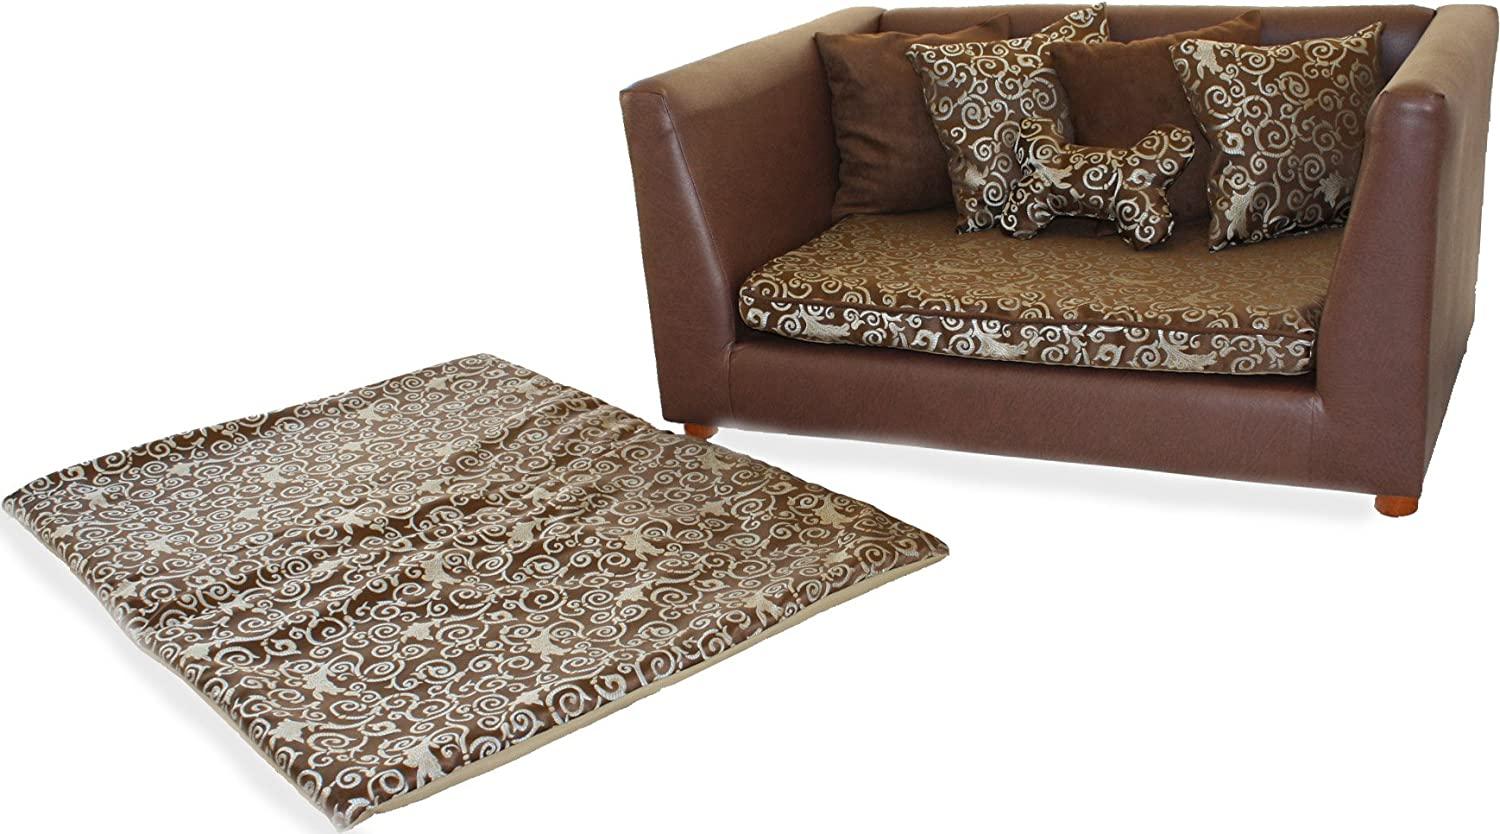 Best Sofa Bed Review Best Sofa Bed Reviews Top 6 Best